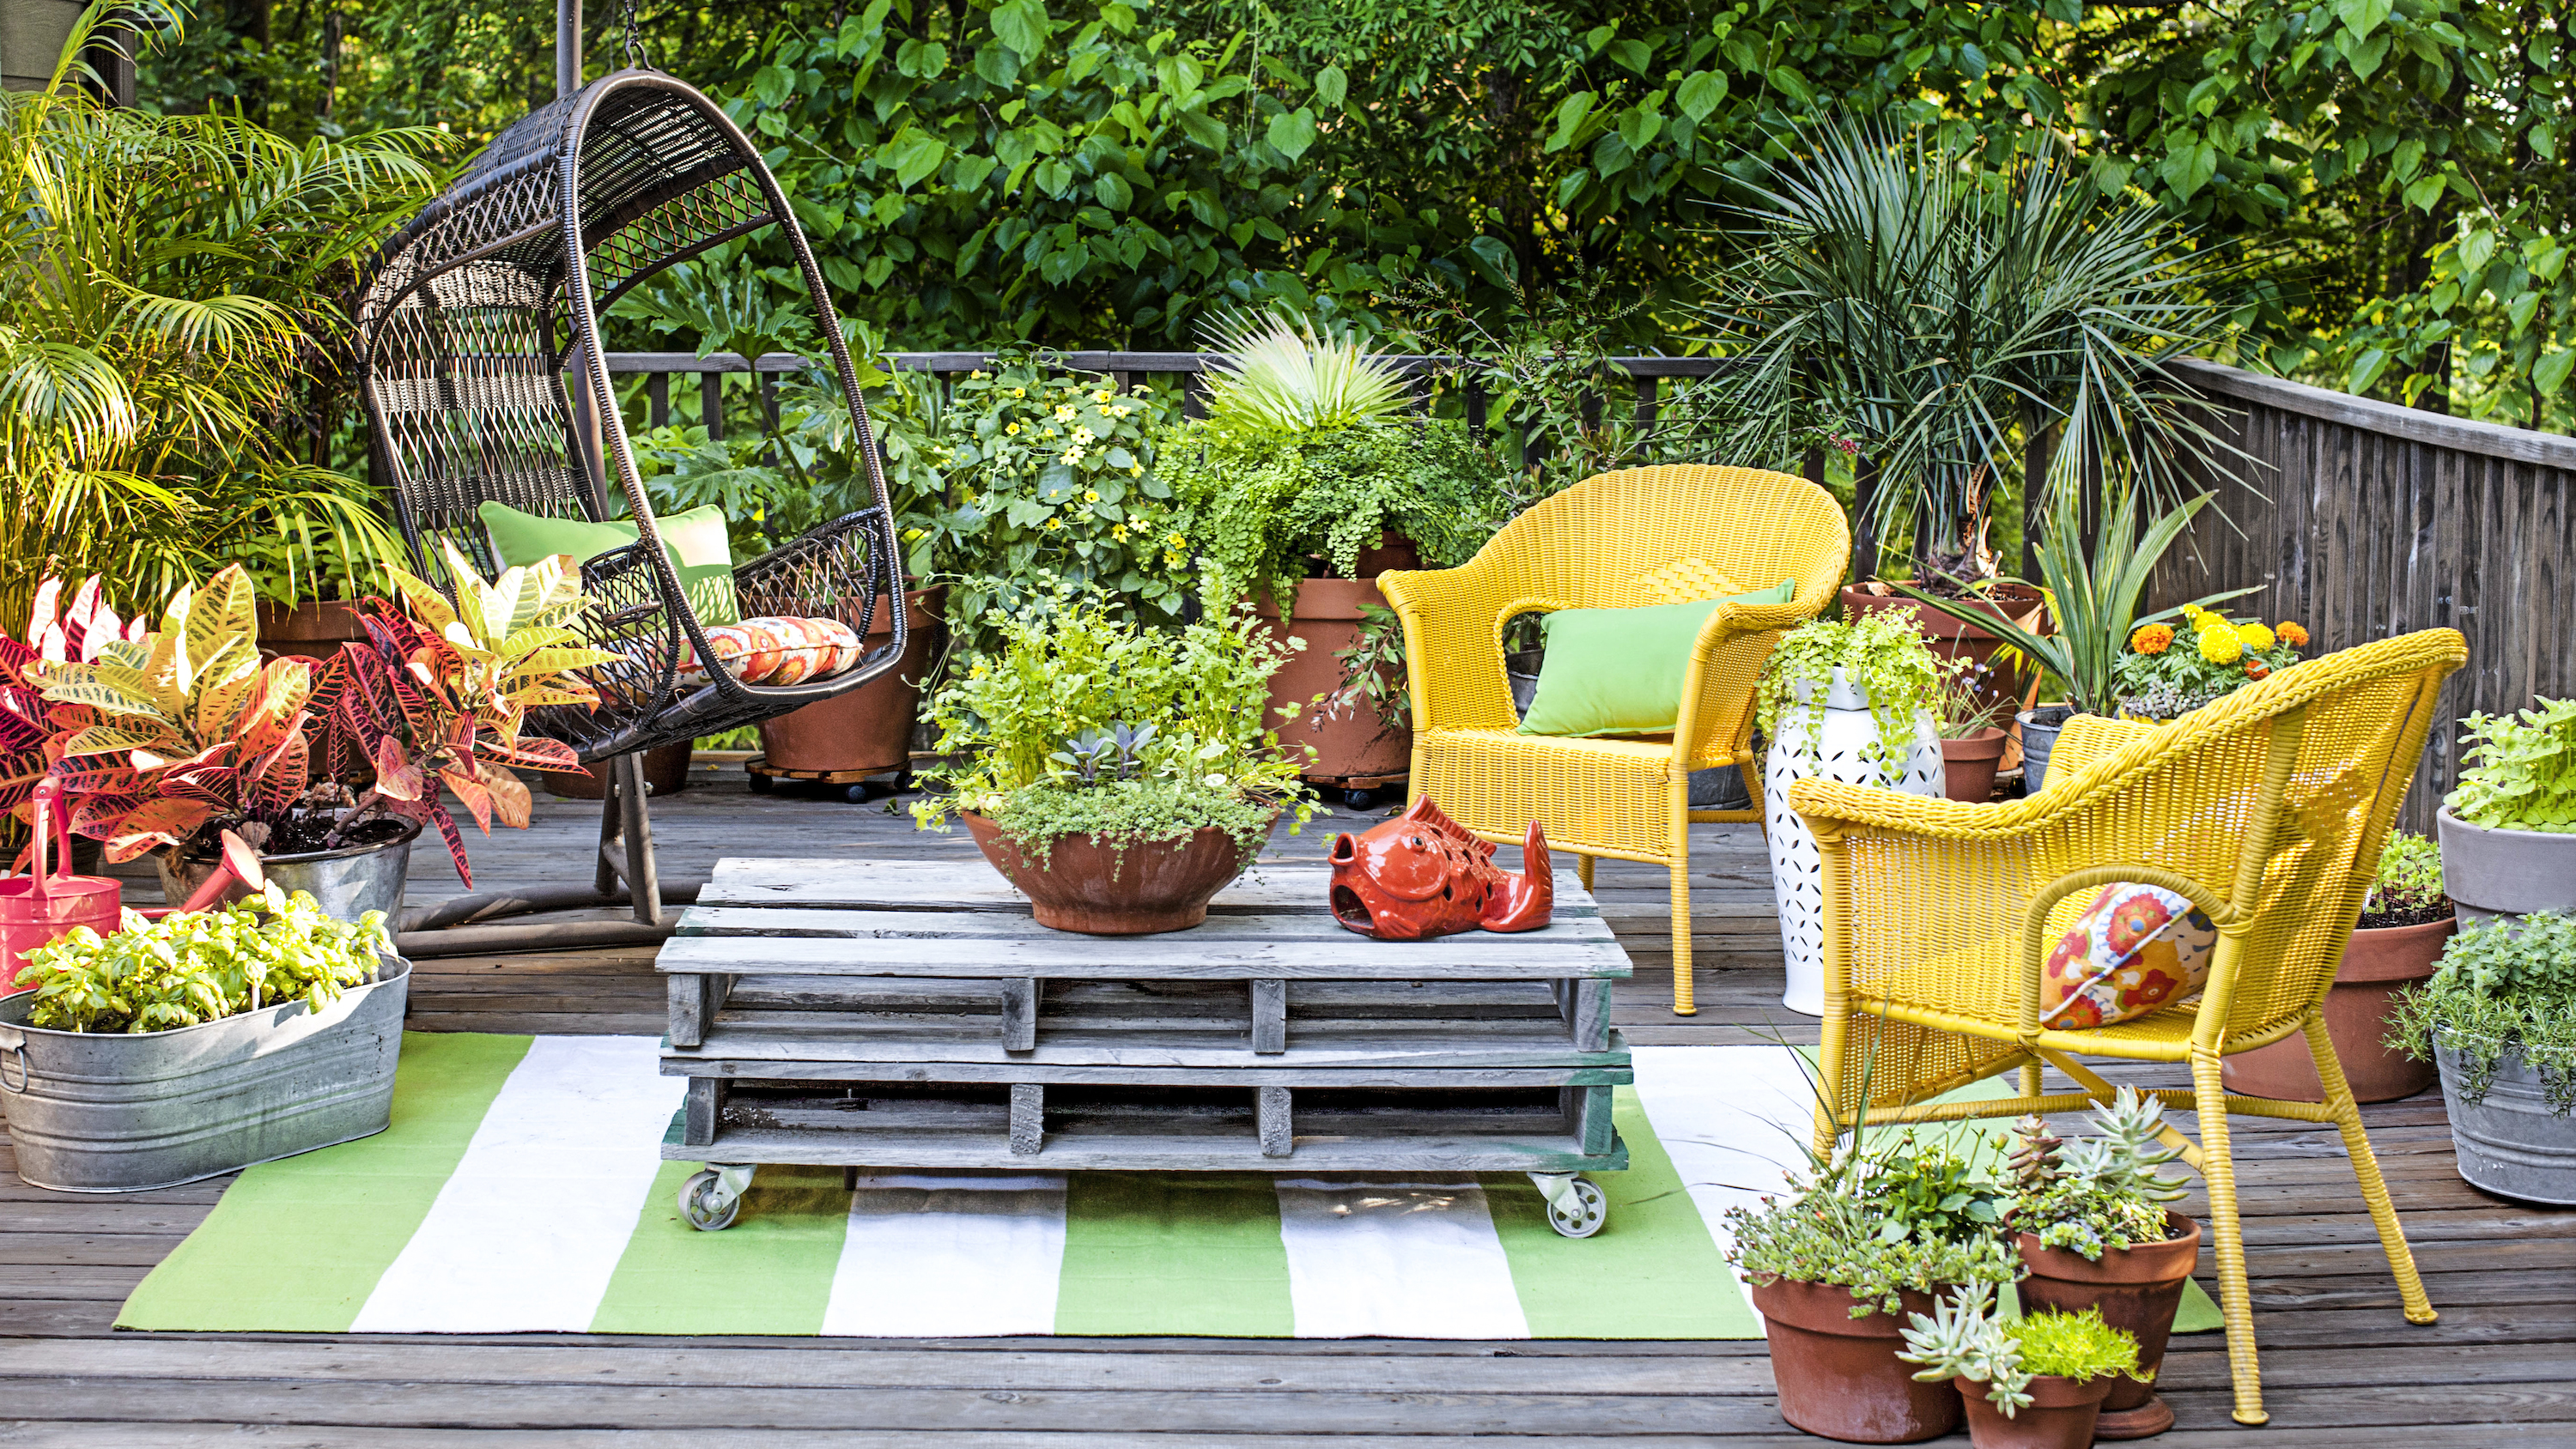 40 small garden ideas - small garden designs - Patio Gardening Ideas